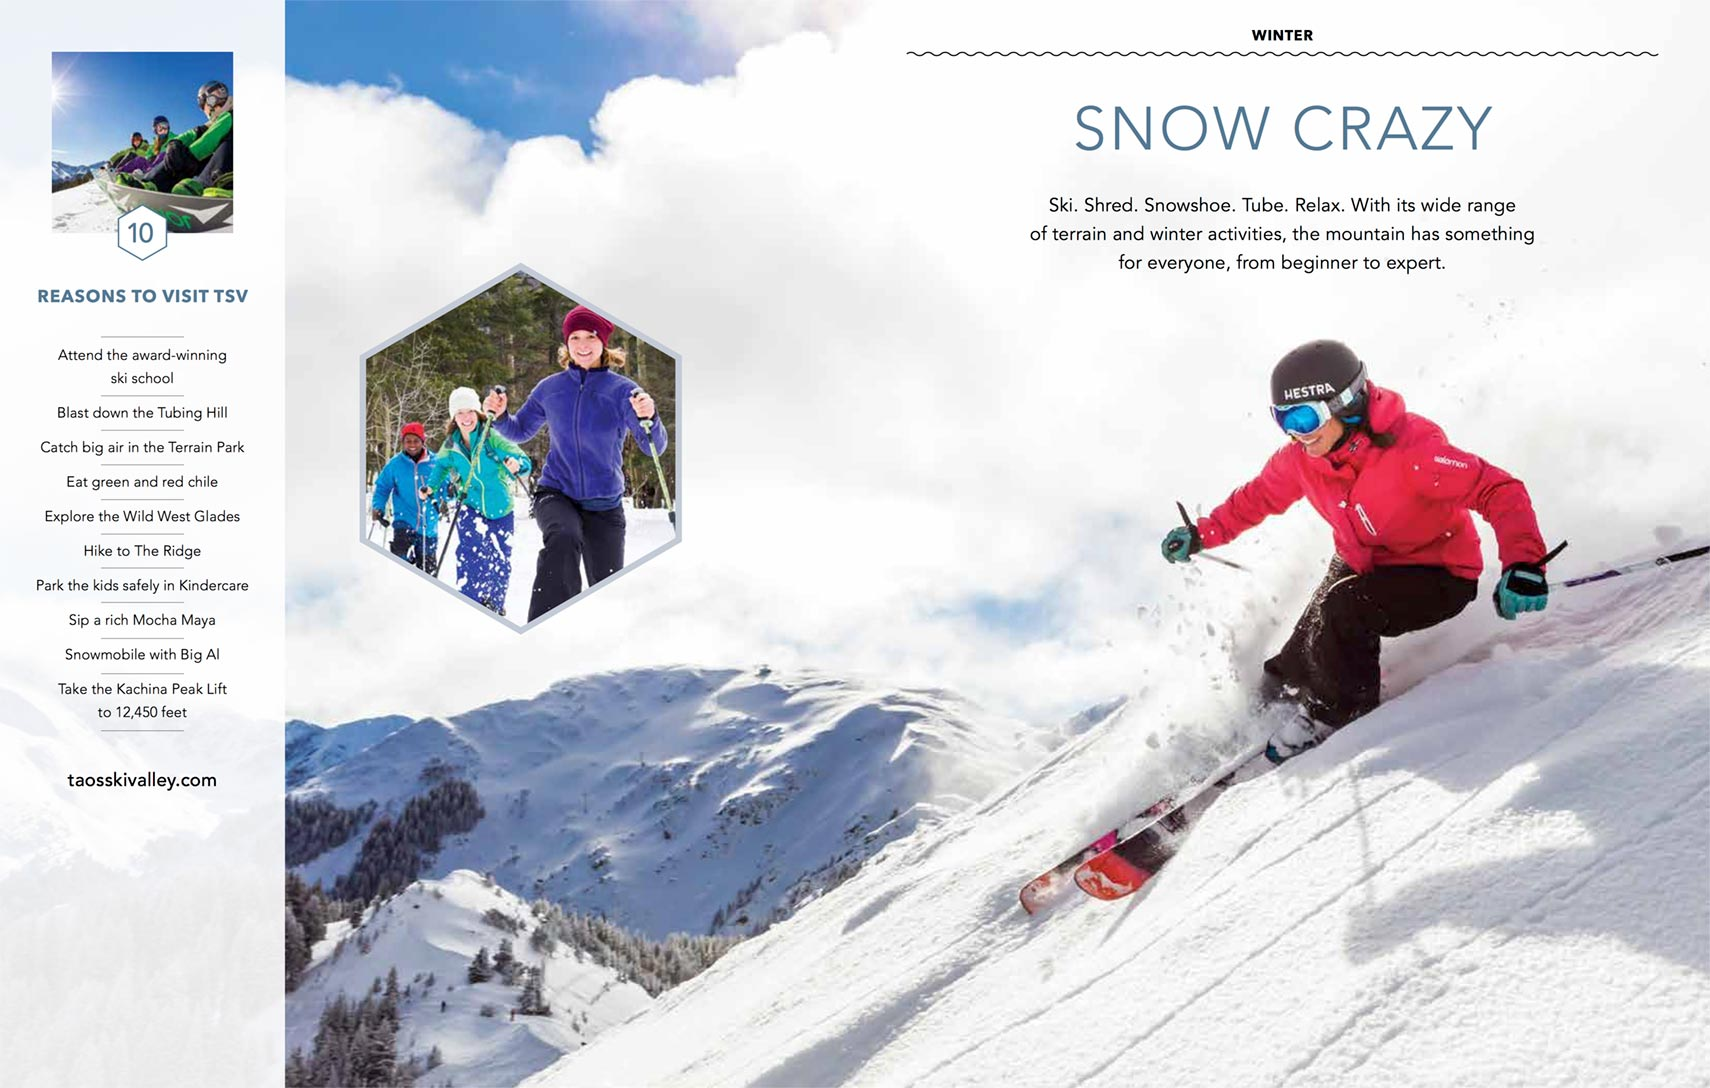 Taos-Ski-Valley-Chamber-2015-Visitor-Guide-Inside-Use